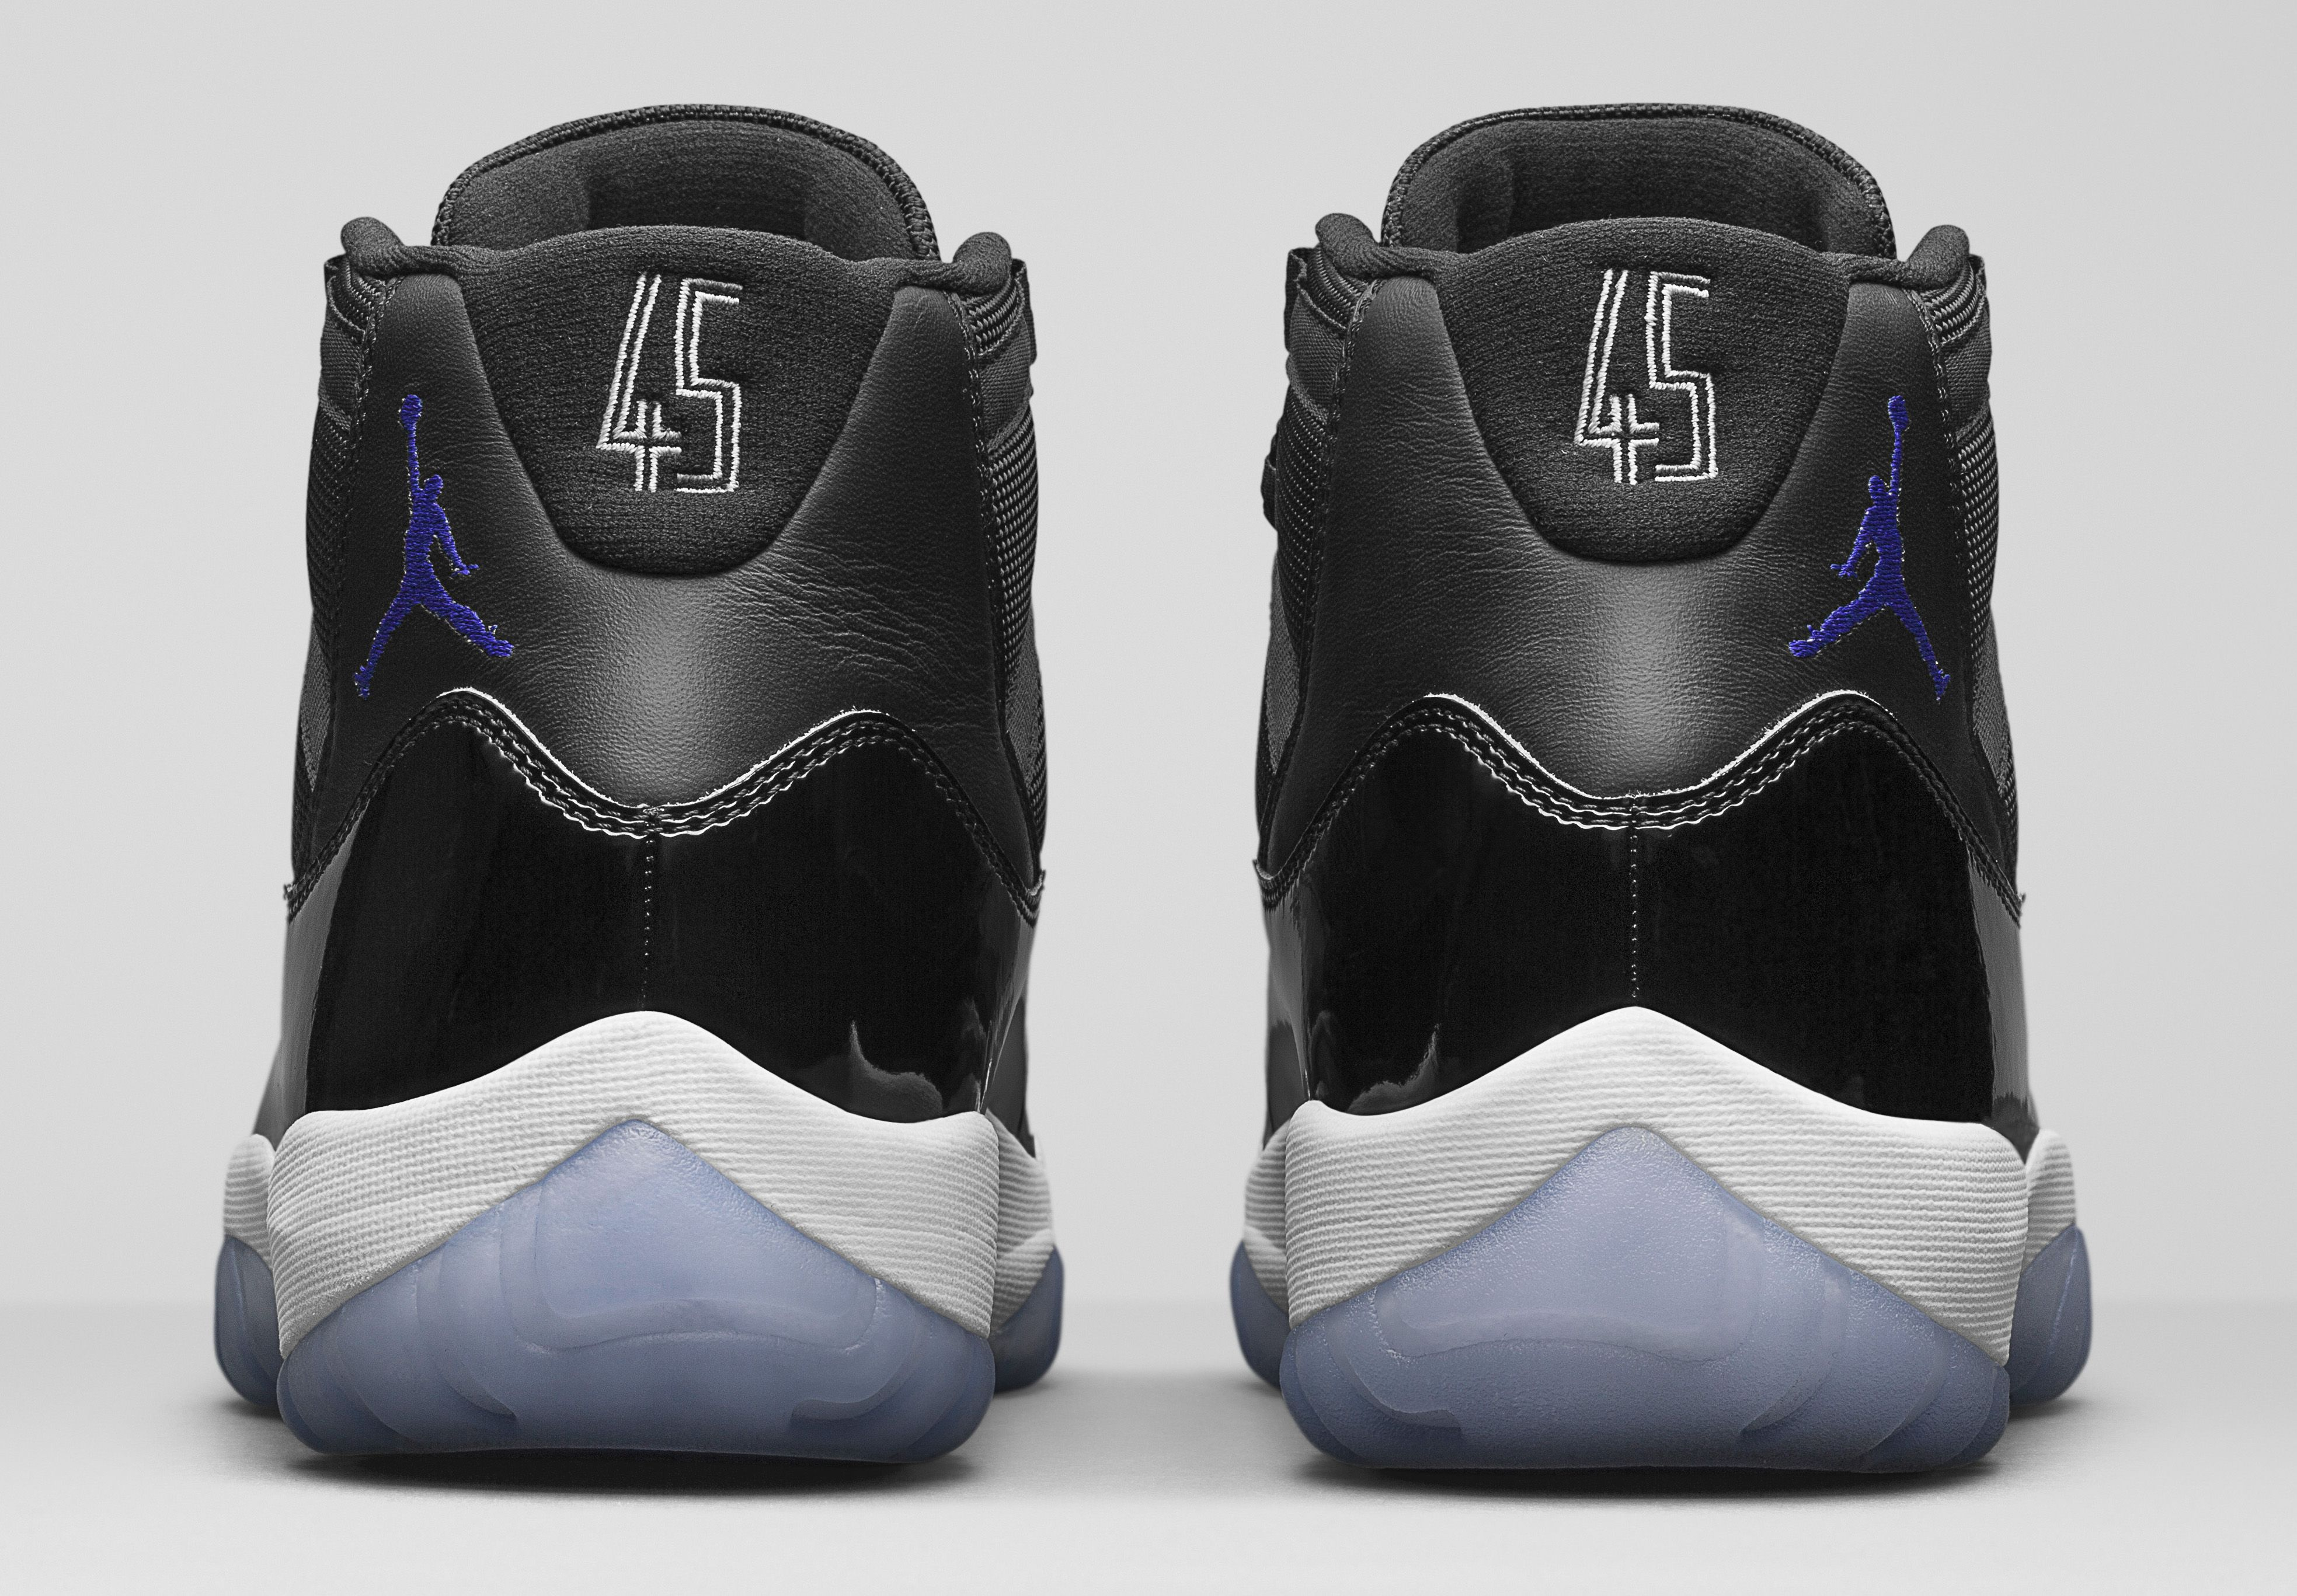 Jordan Brand has finally released some mouth-watering images of the Air Jordan  XI Space Jam. Release information and pricing has been provided as well. 8f2b46bd4